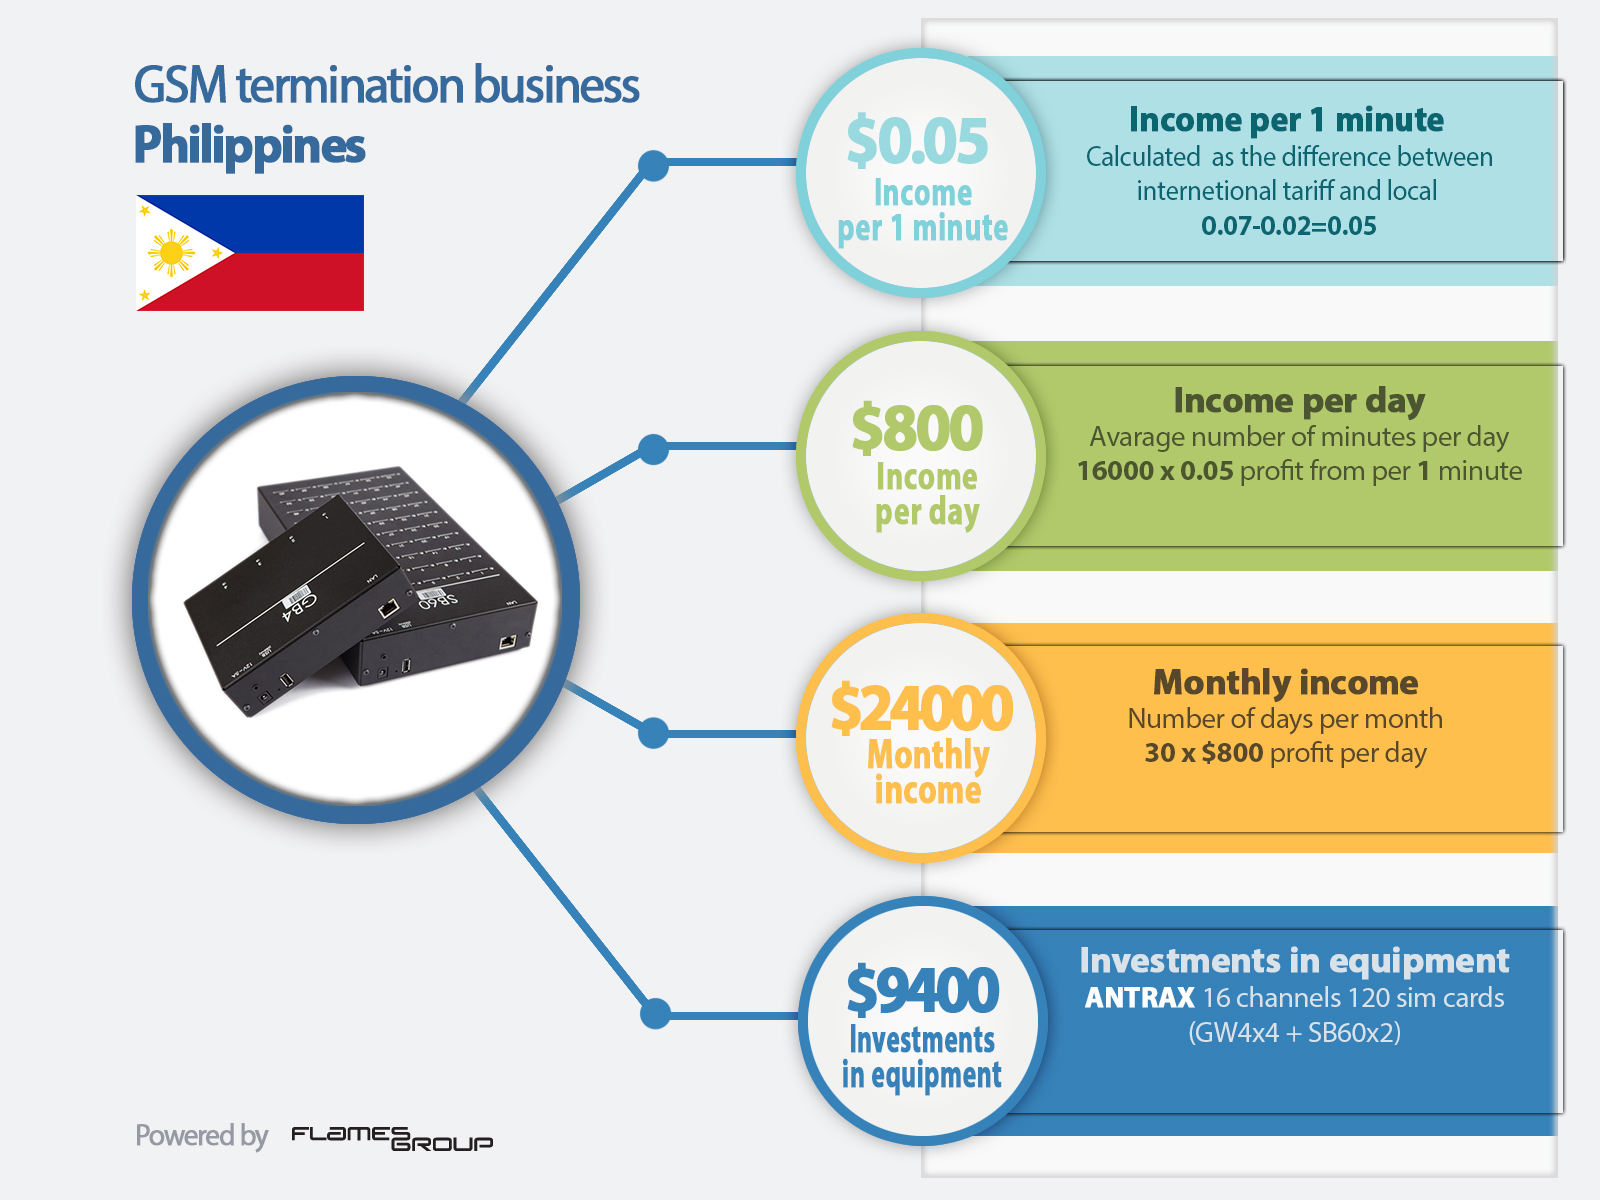 GSM termination in Philippines - Infographic ANTRAX